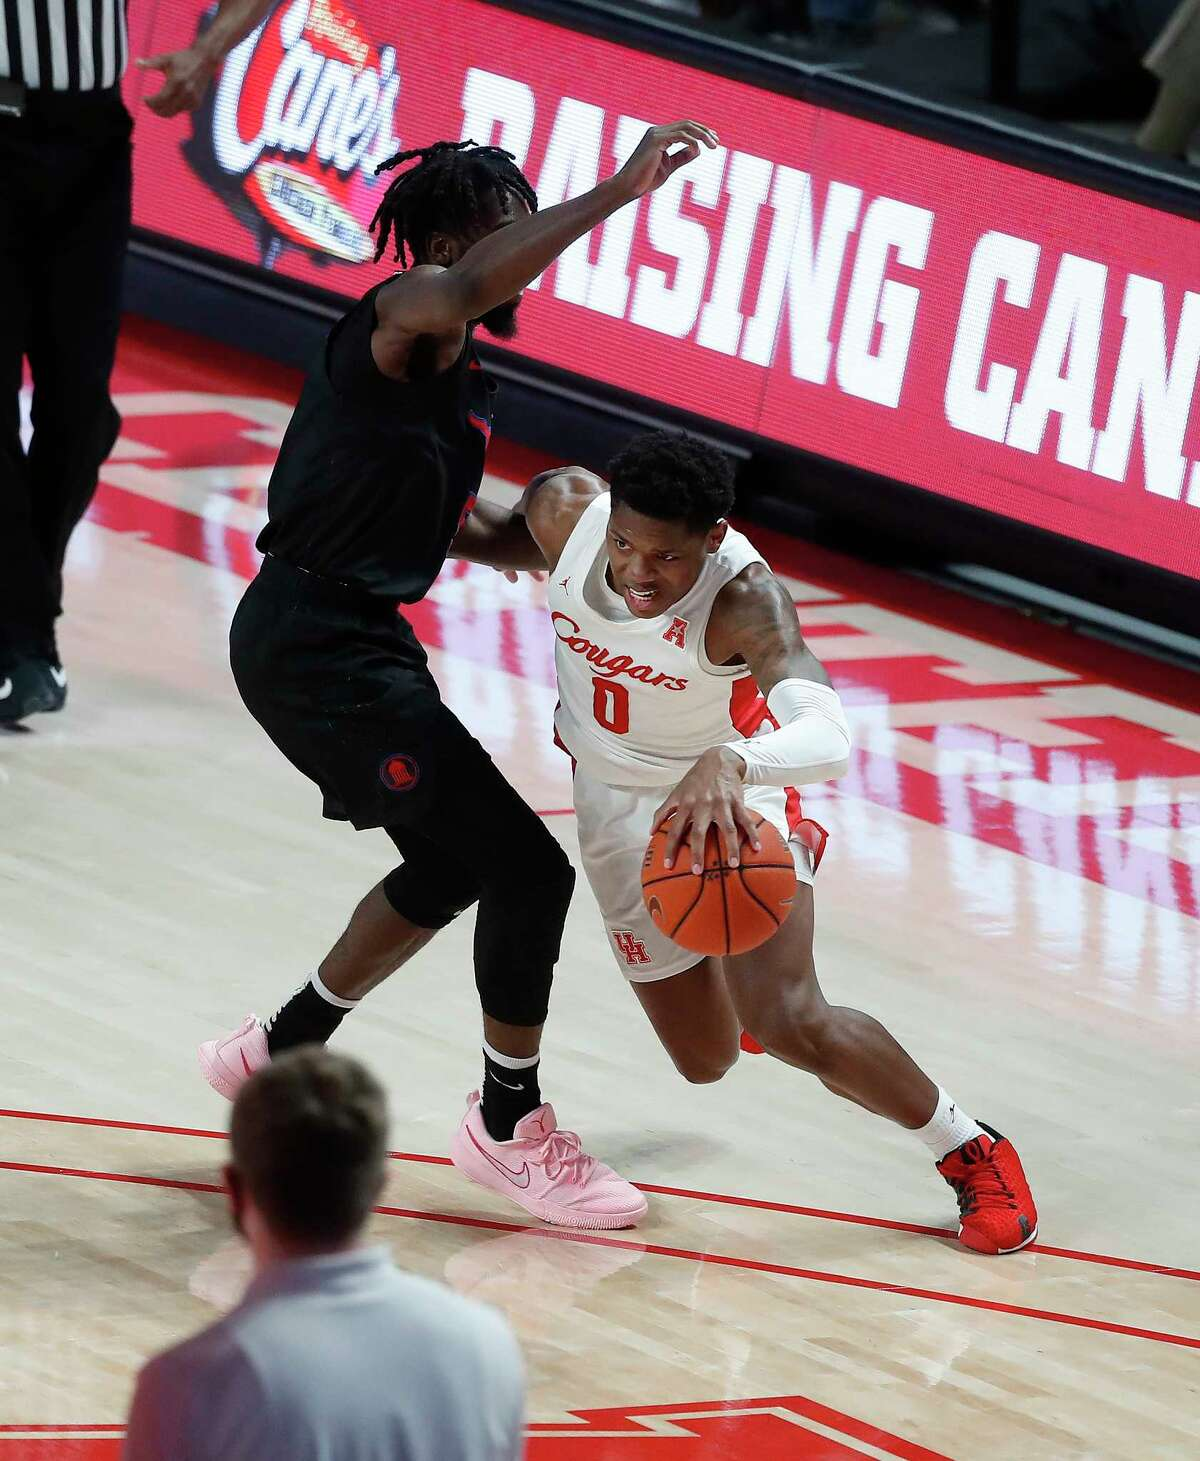 Houston Cougars guard Marcus Sasser (0) works against Southern Methodist Mustangs guard Emmanuel Bandoumel (5) during the first half of an NCAA men's basketball game at the Fertitta Center, in Houston, Sunday, Jan. 31, 2021.